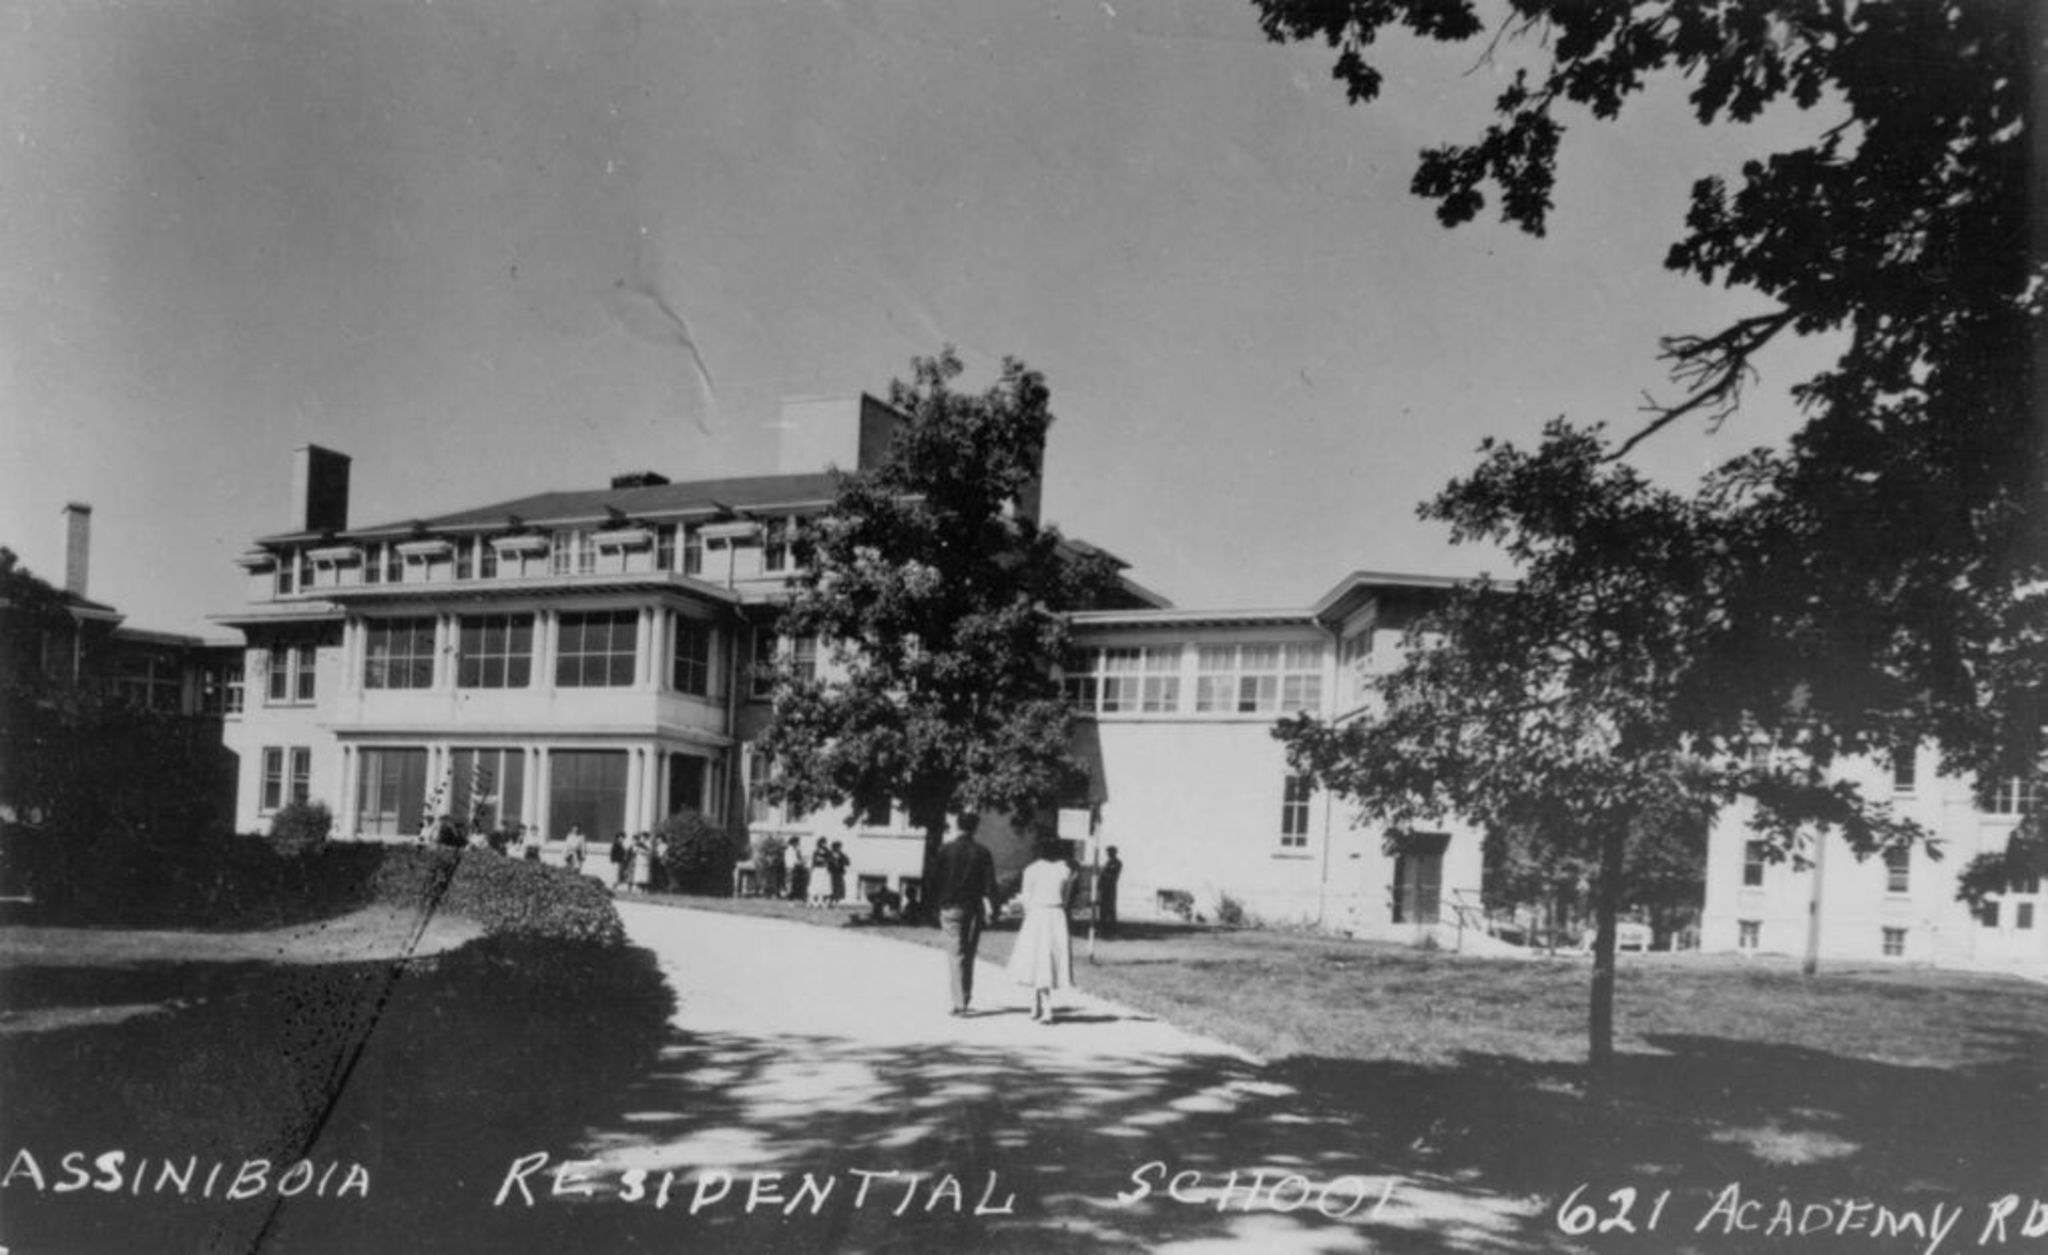 The Assiniboia Indian Residential School operated at 615 Academy Rd. from 1958 to 1973. (Société historique de Saint-Boniface)</p></p>